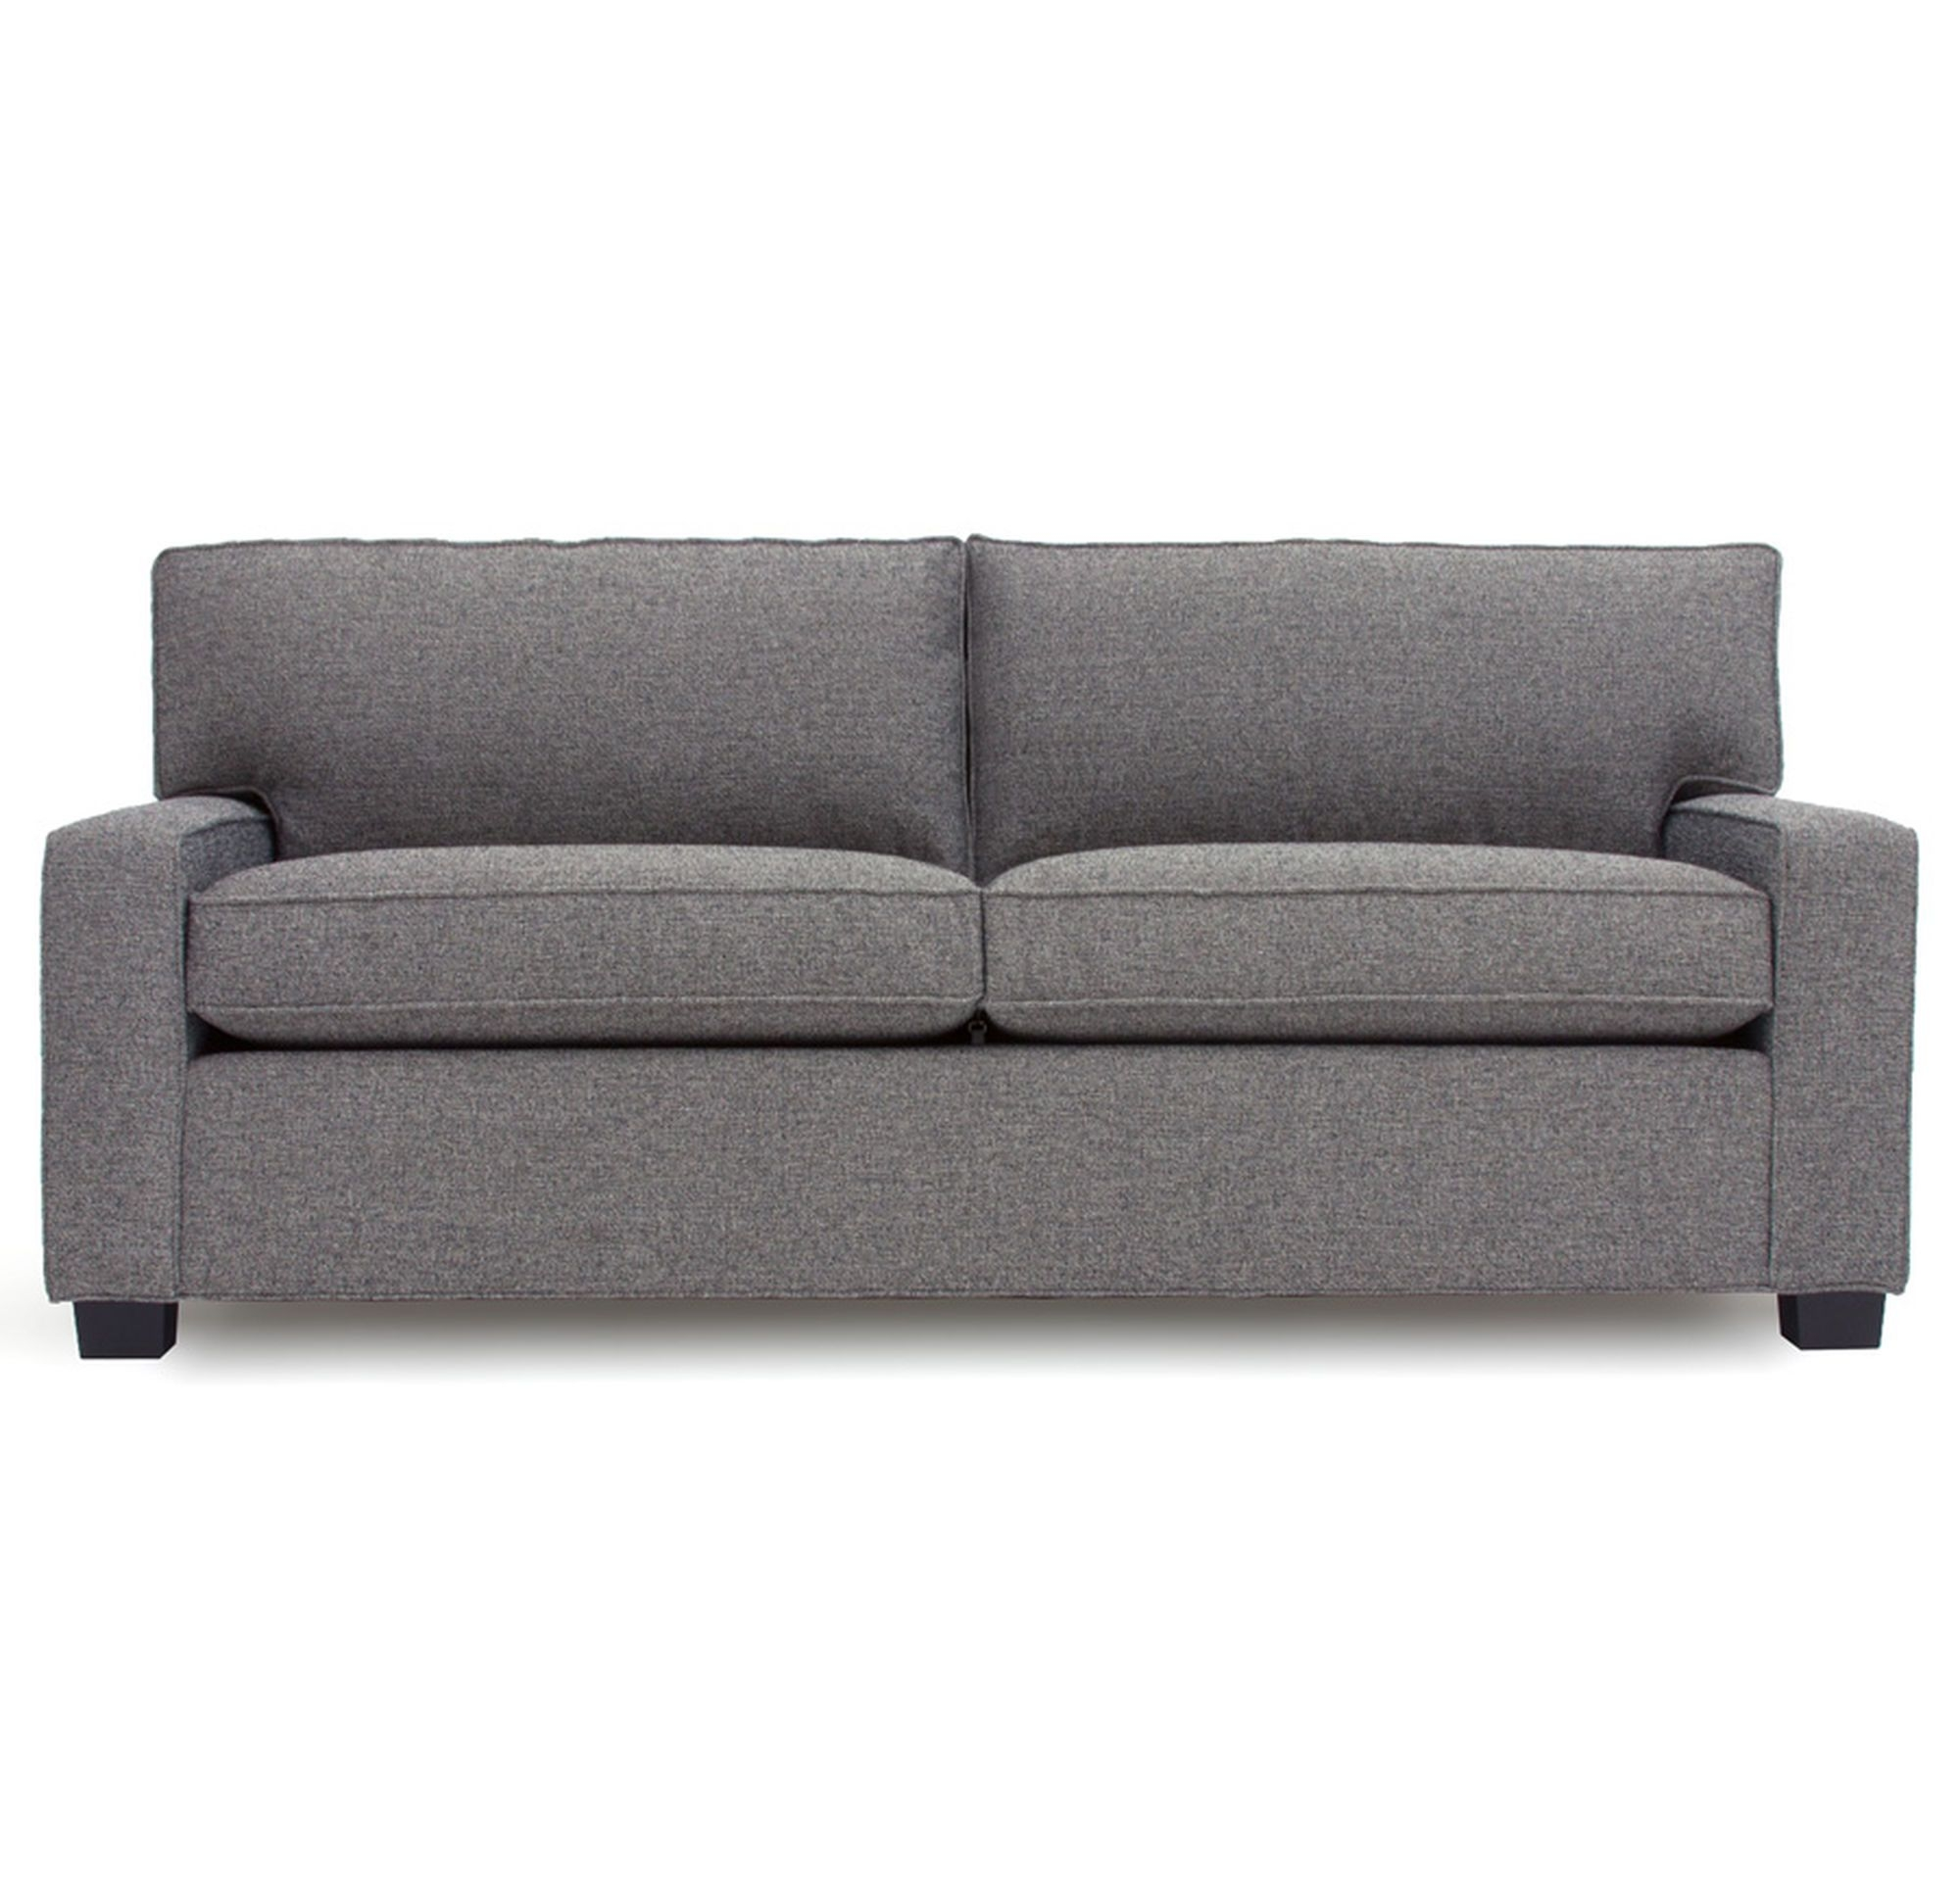 Small Sleeper Sofa With Chaise